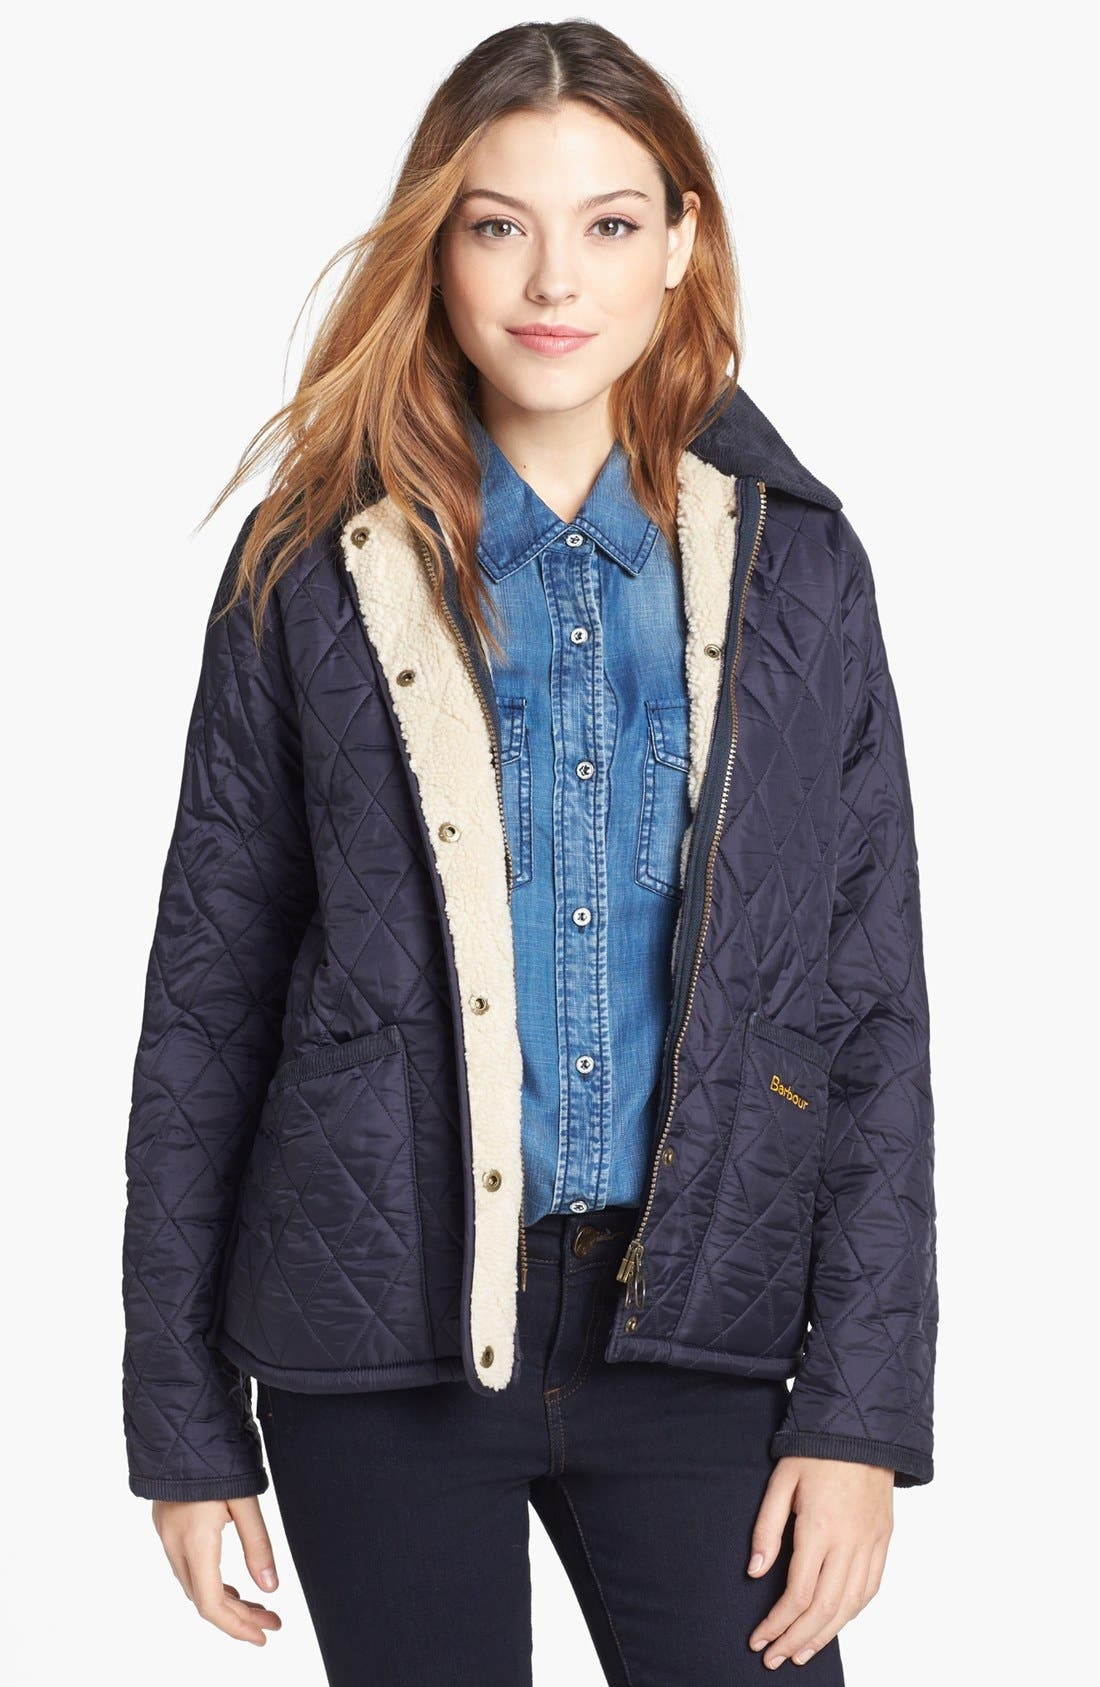 Alternate Image 1 Selected - Barbour 'Vintage Liddesdale' Quilted Jacket